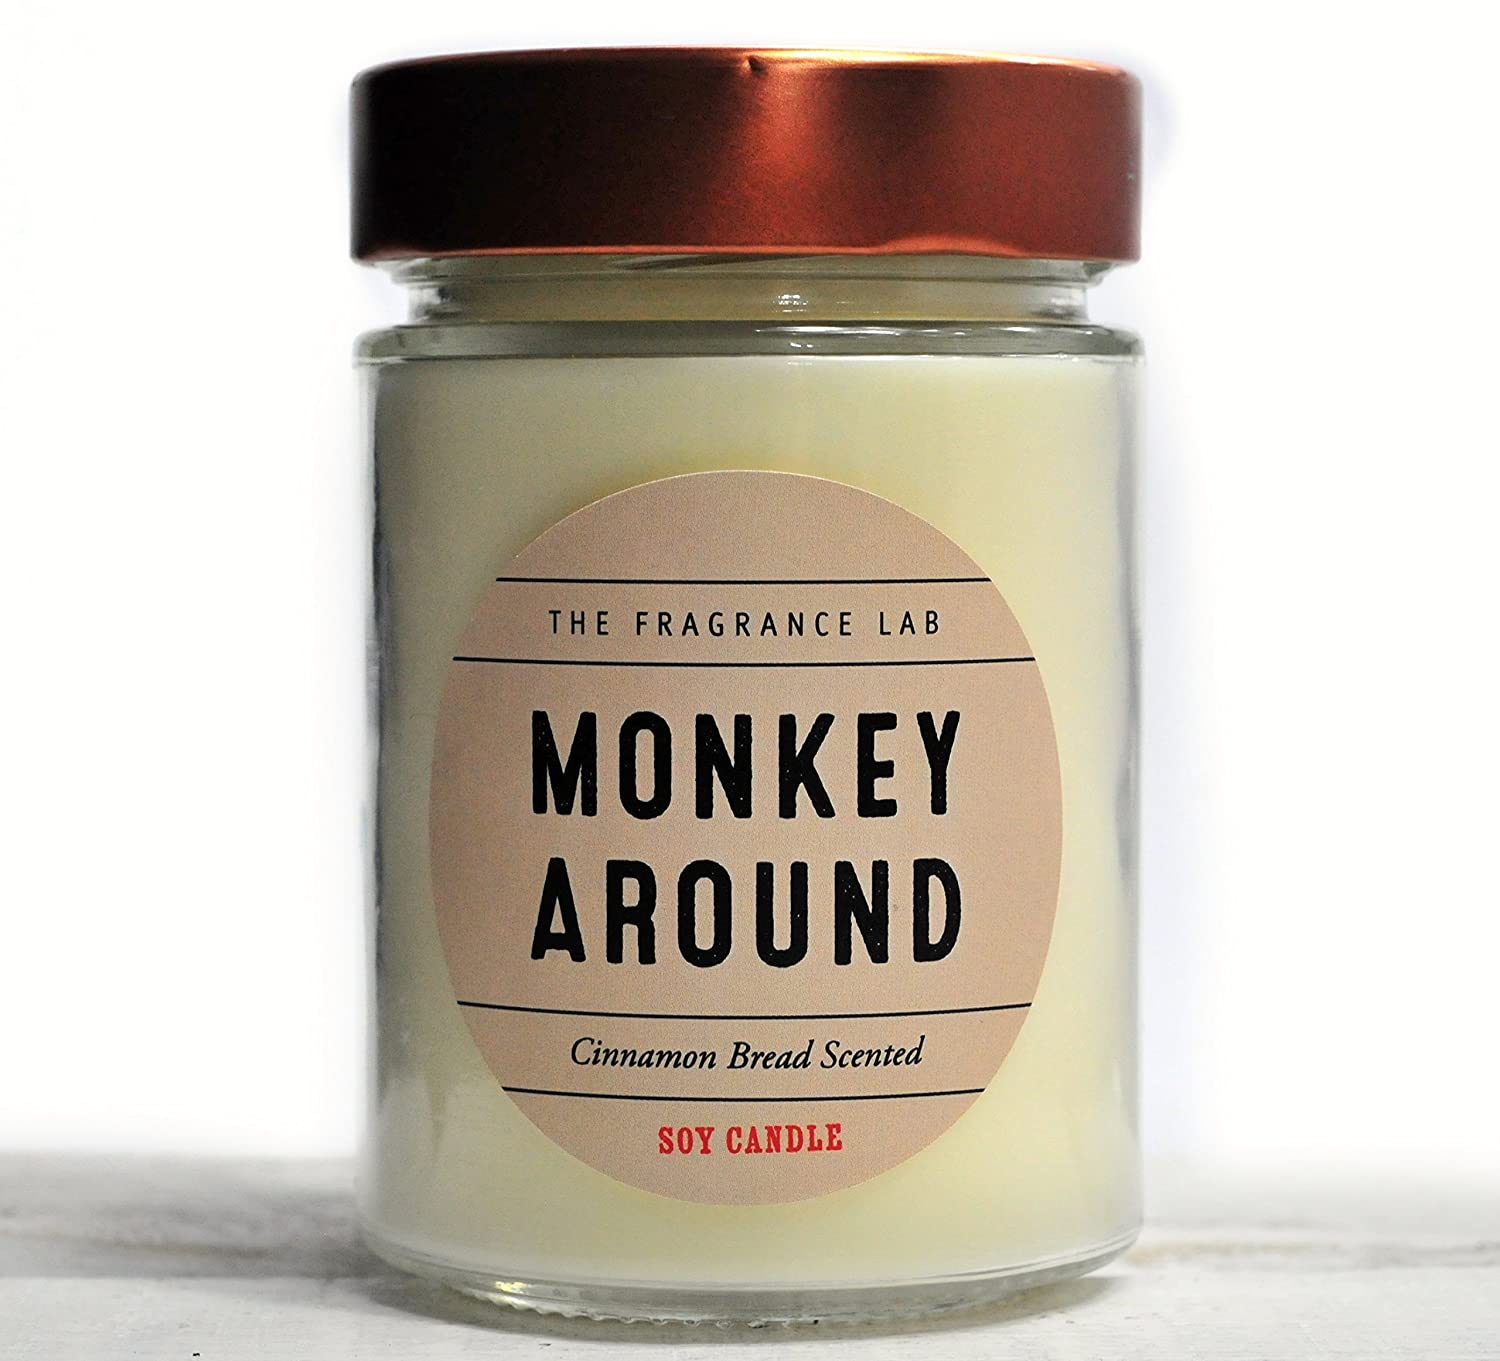 Handmade Soy Candles -Monkey Around Cinnamon Bread Scented | The Fragrance Lab